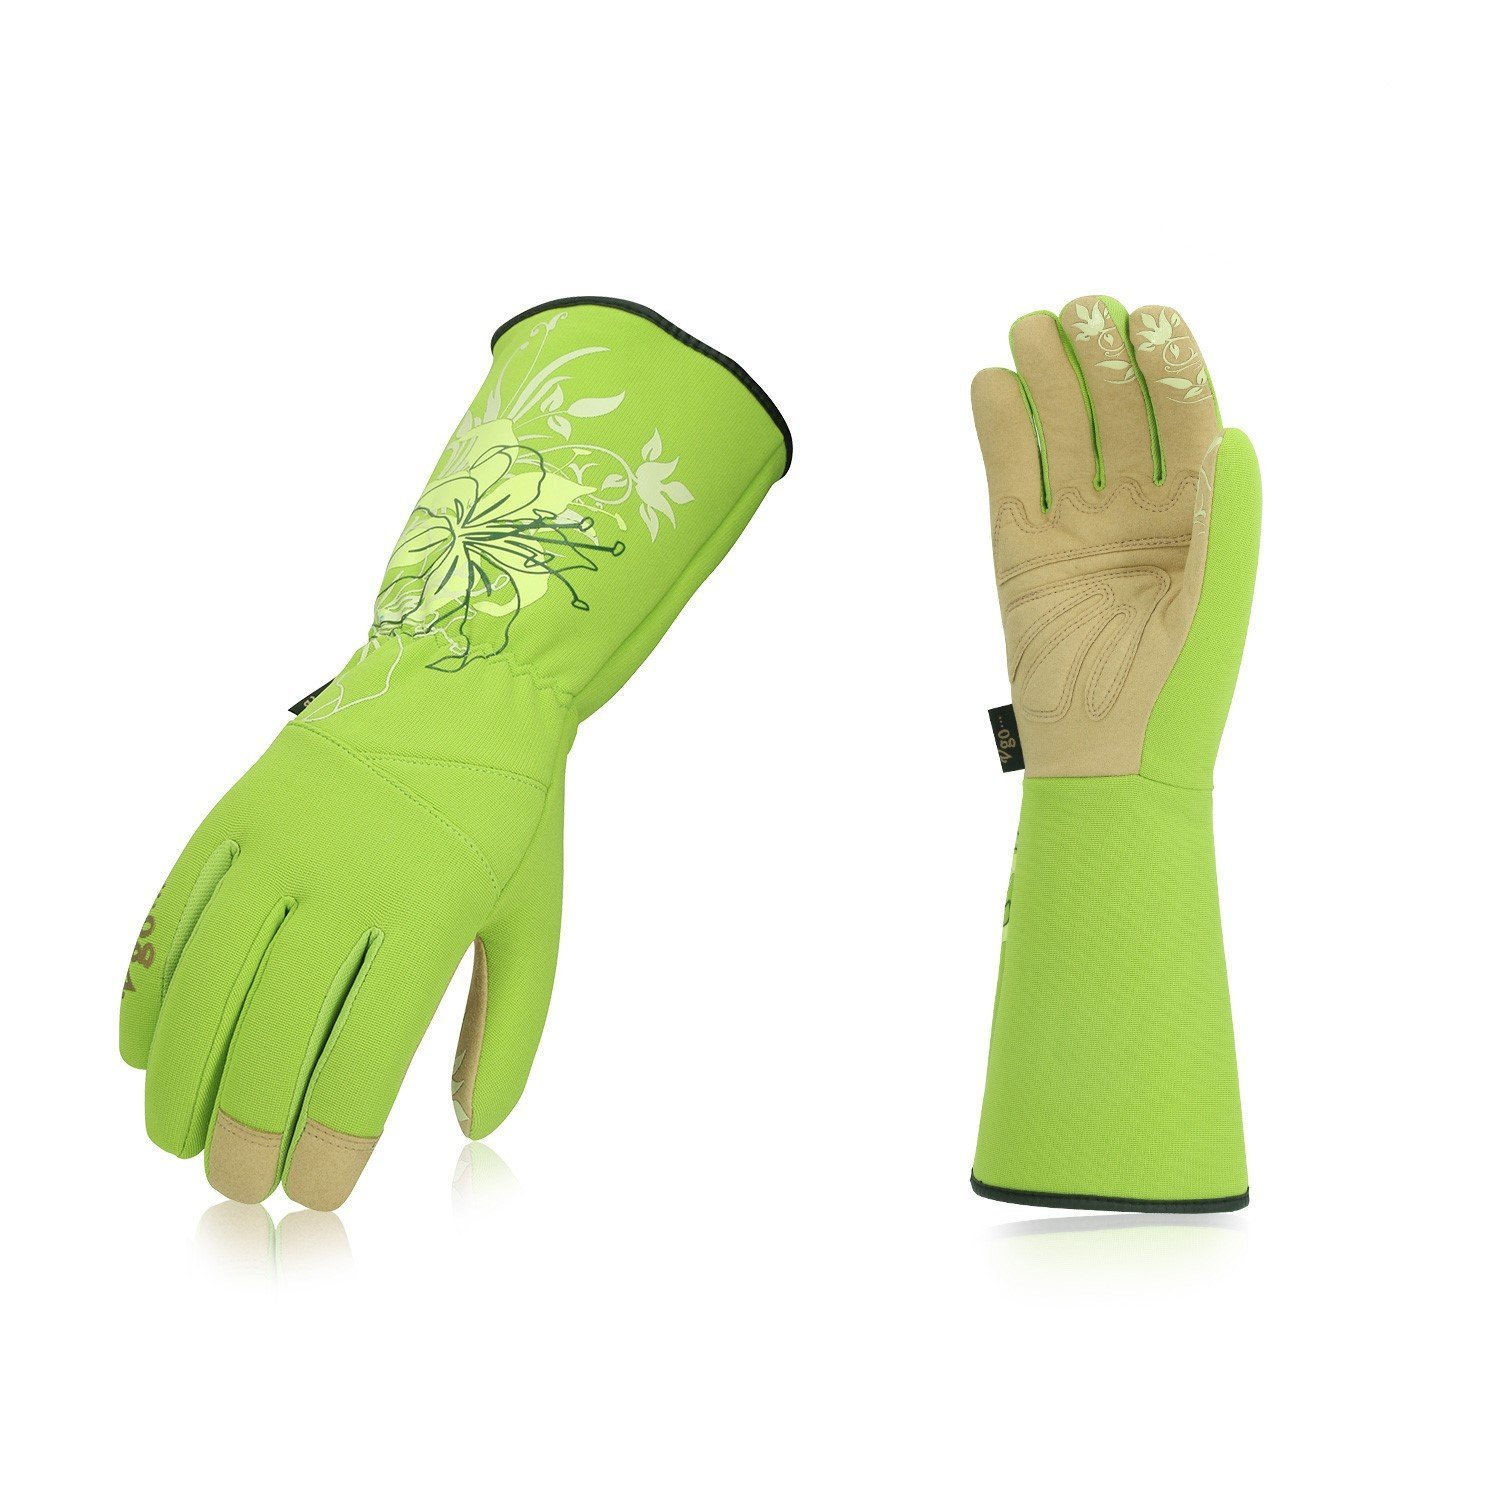 Vgo Ladies' Synthetic Leather Long Cuff Rose Garden Gloves(1Pair,Size L,Green,SL7445)